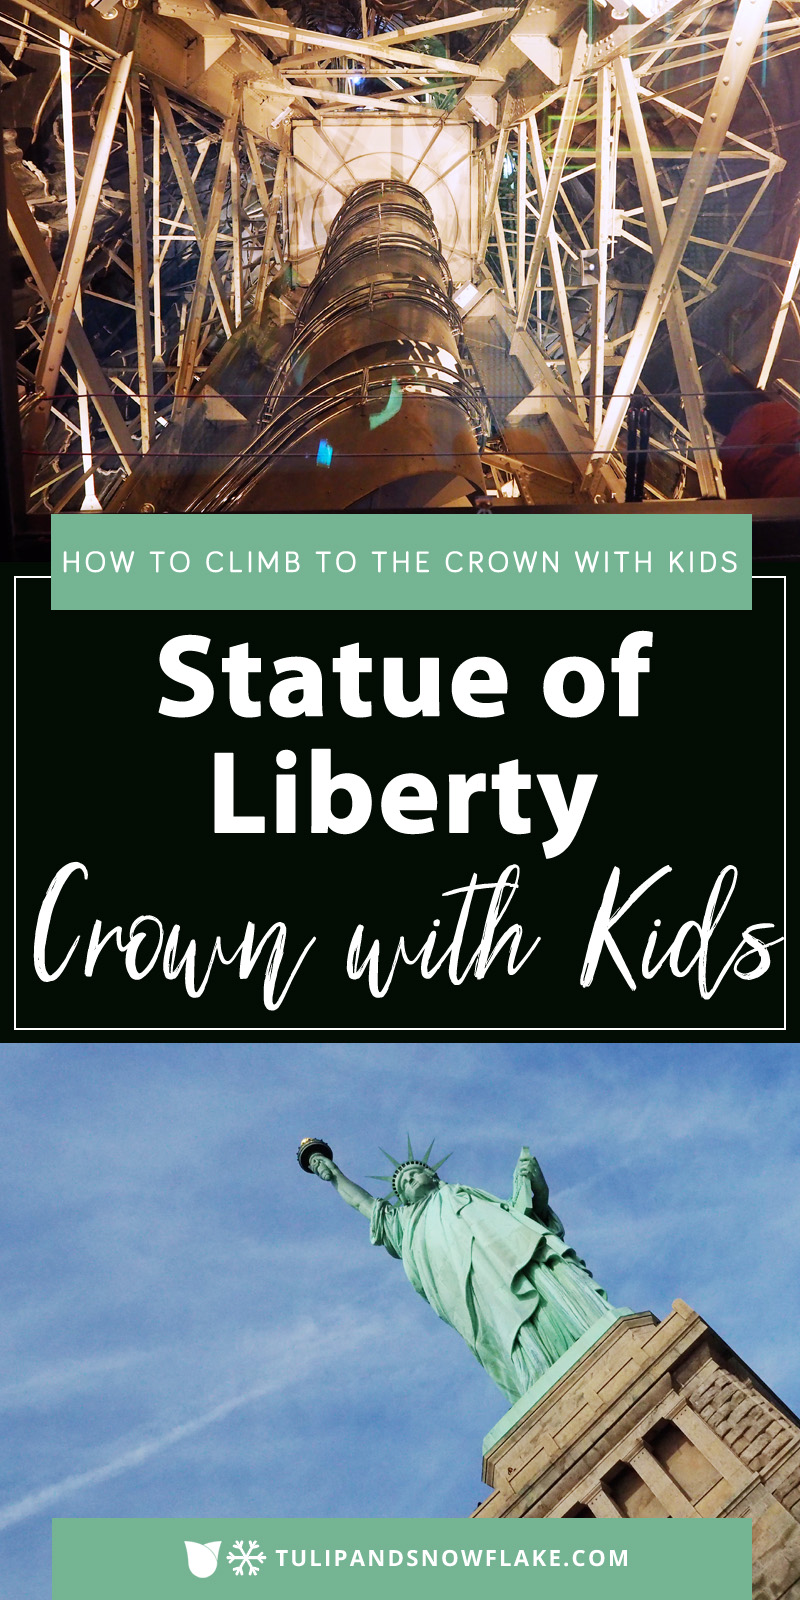 Statue of Liberty Crown with Kids